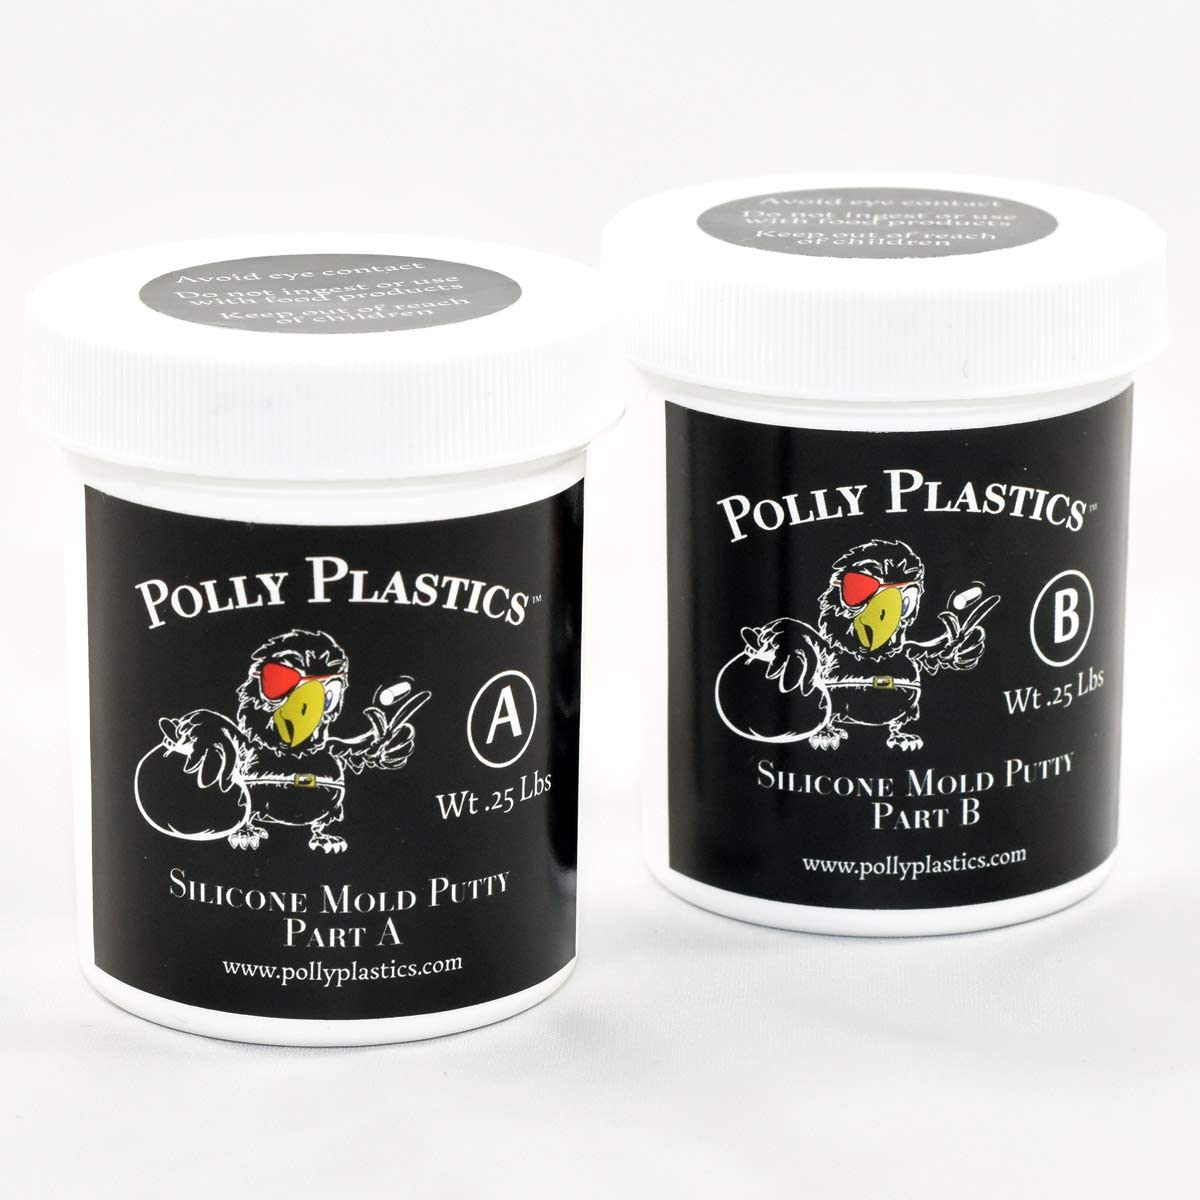 Polly Plastics Silicone Molding Putty - 2 Pl 5 ☆ very popular for Moldable Lb Max 70% OFF 1